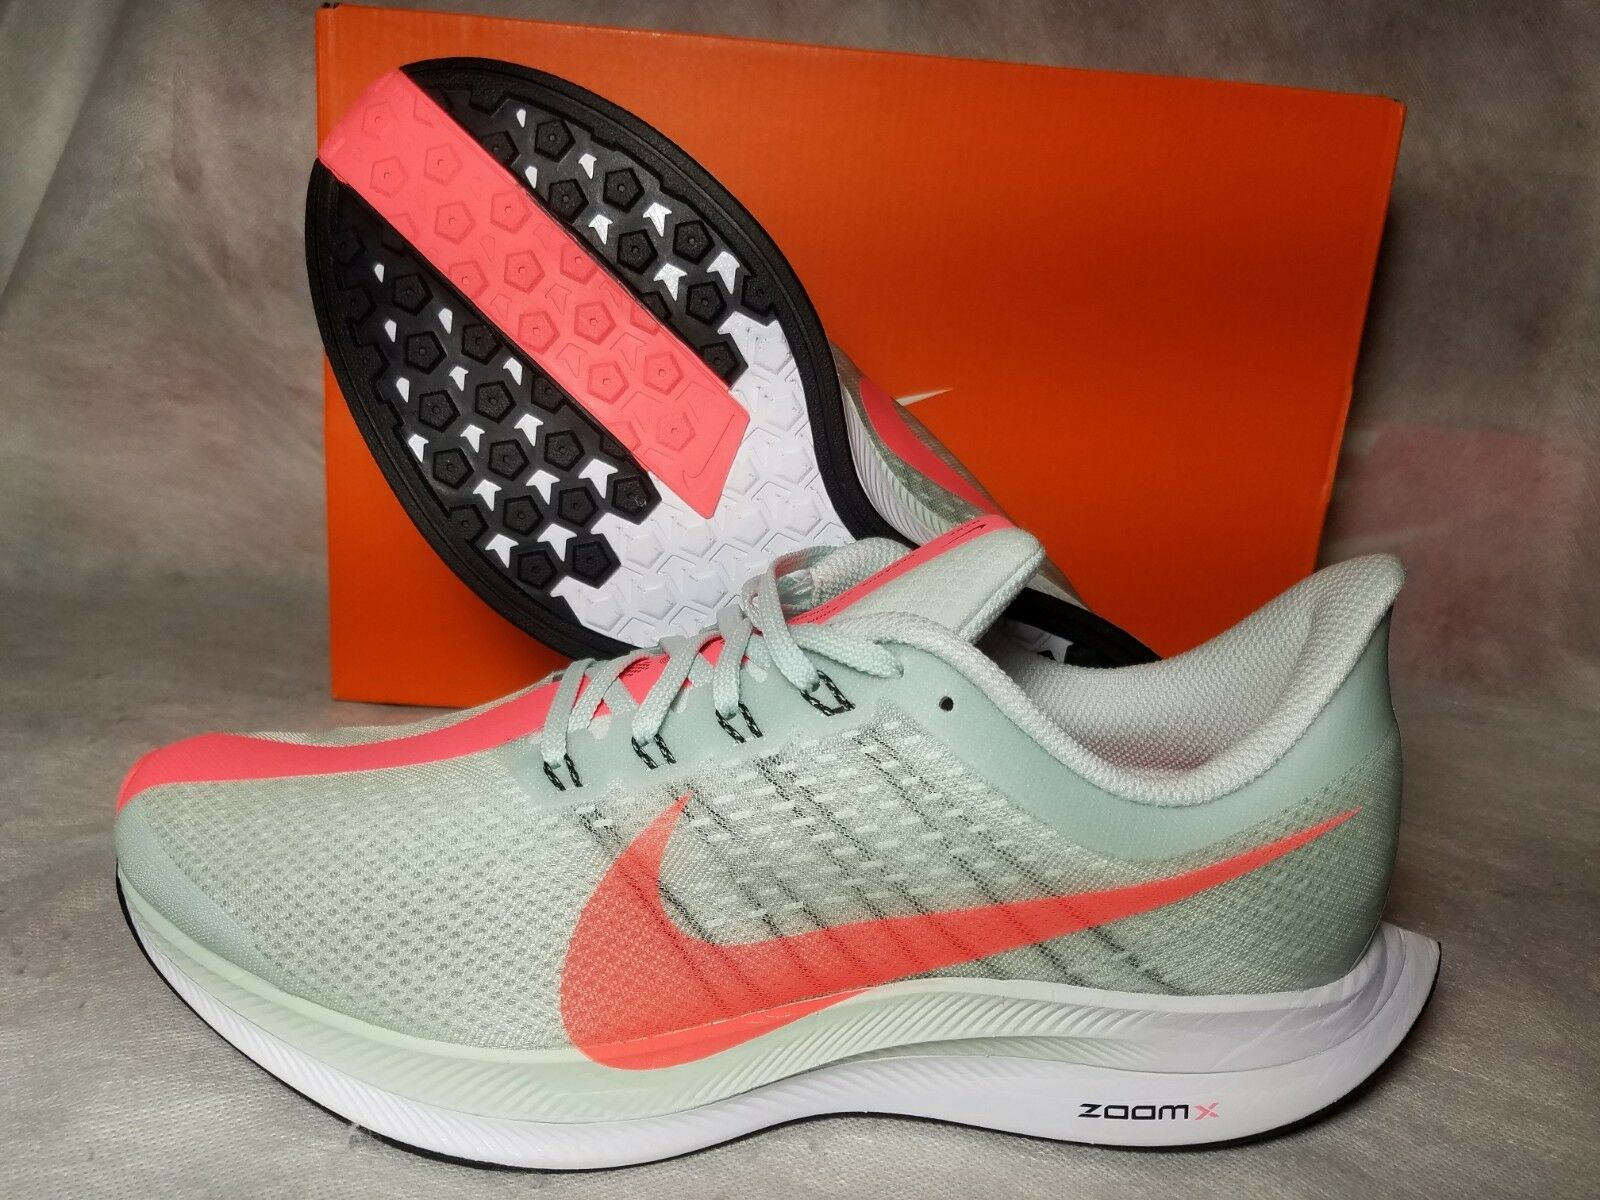 New Nike Zoom X Pegasus 35 Turbo Running shoes Men 10.5 Grey Hot Punch AJ4114-060